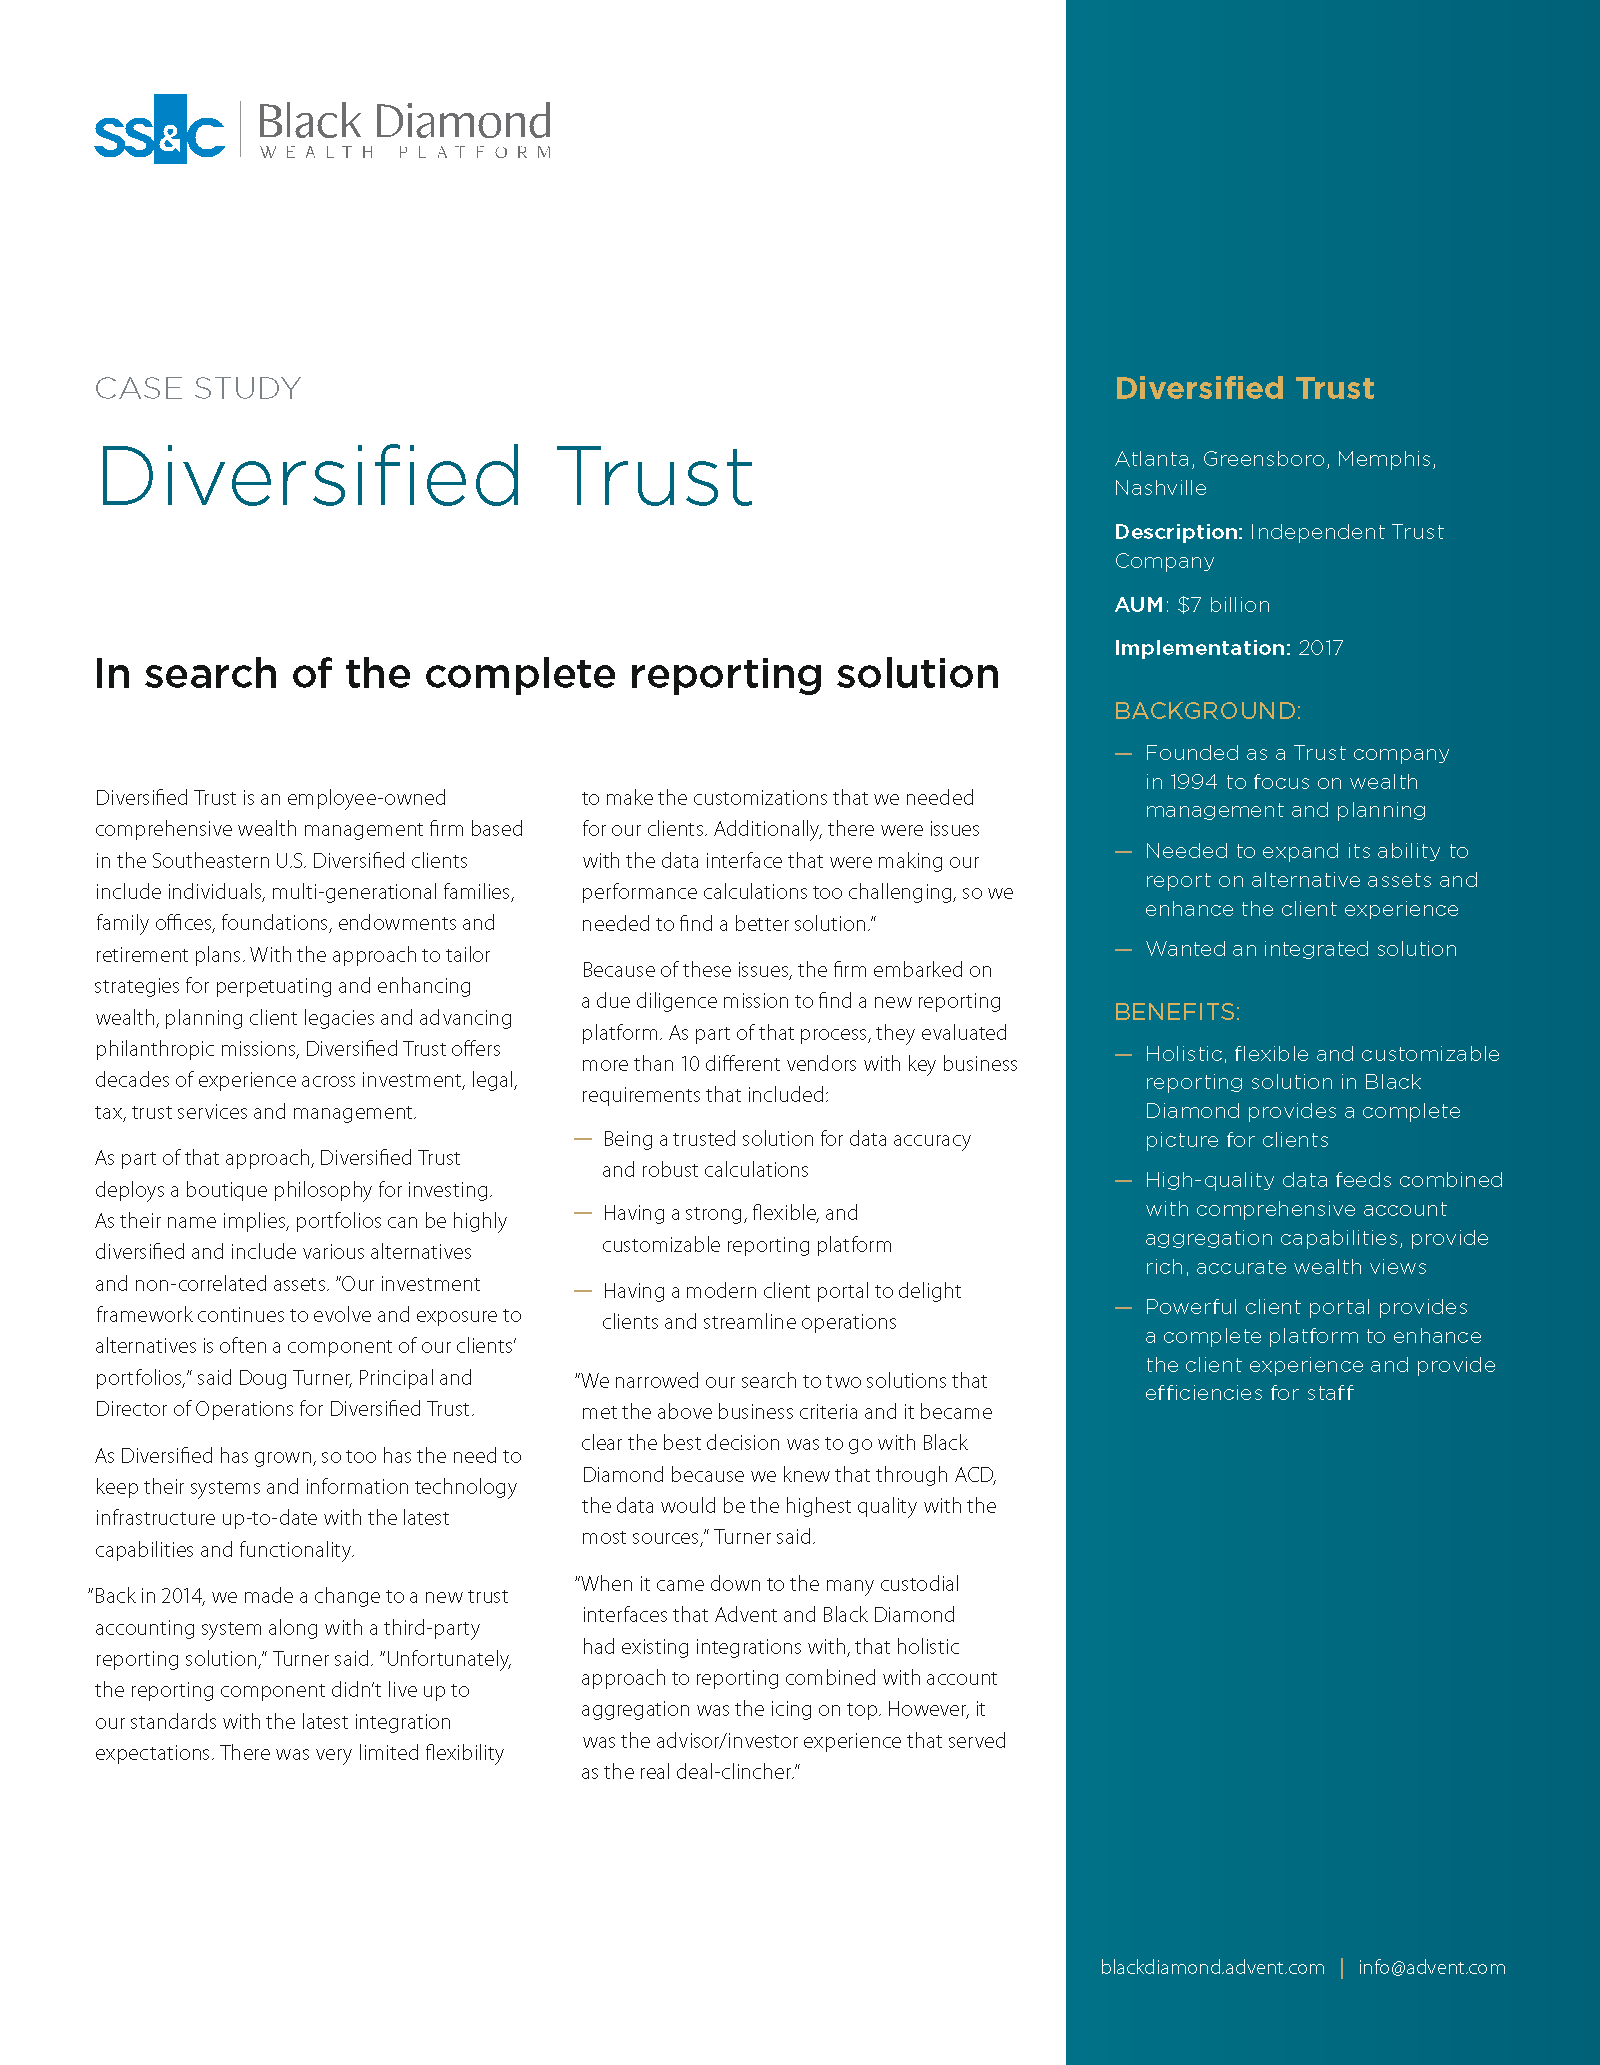 poster image for <p>Diversified Trust</p>